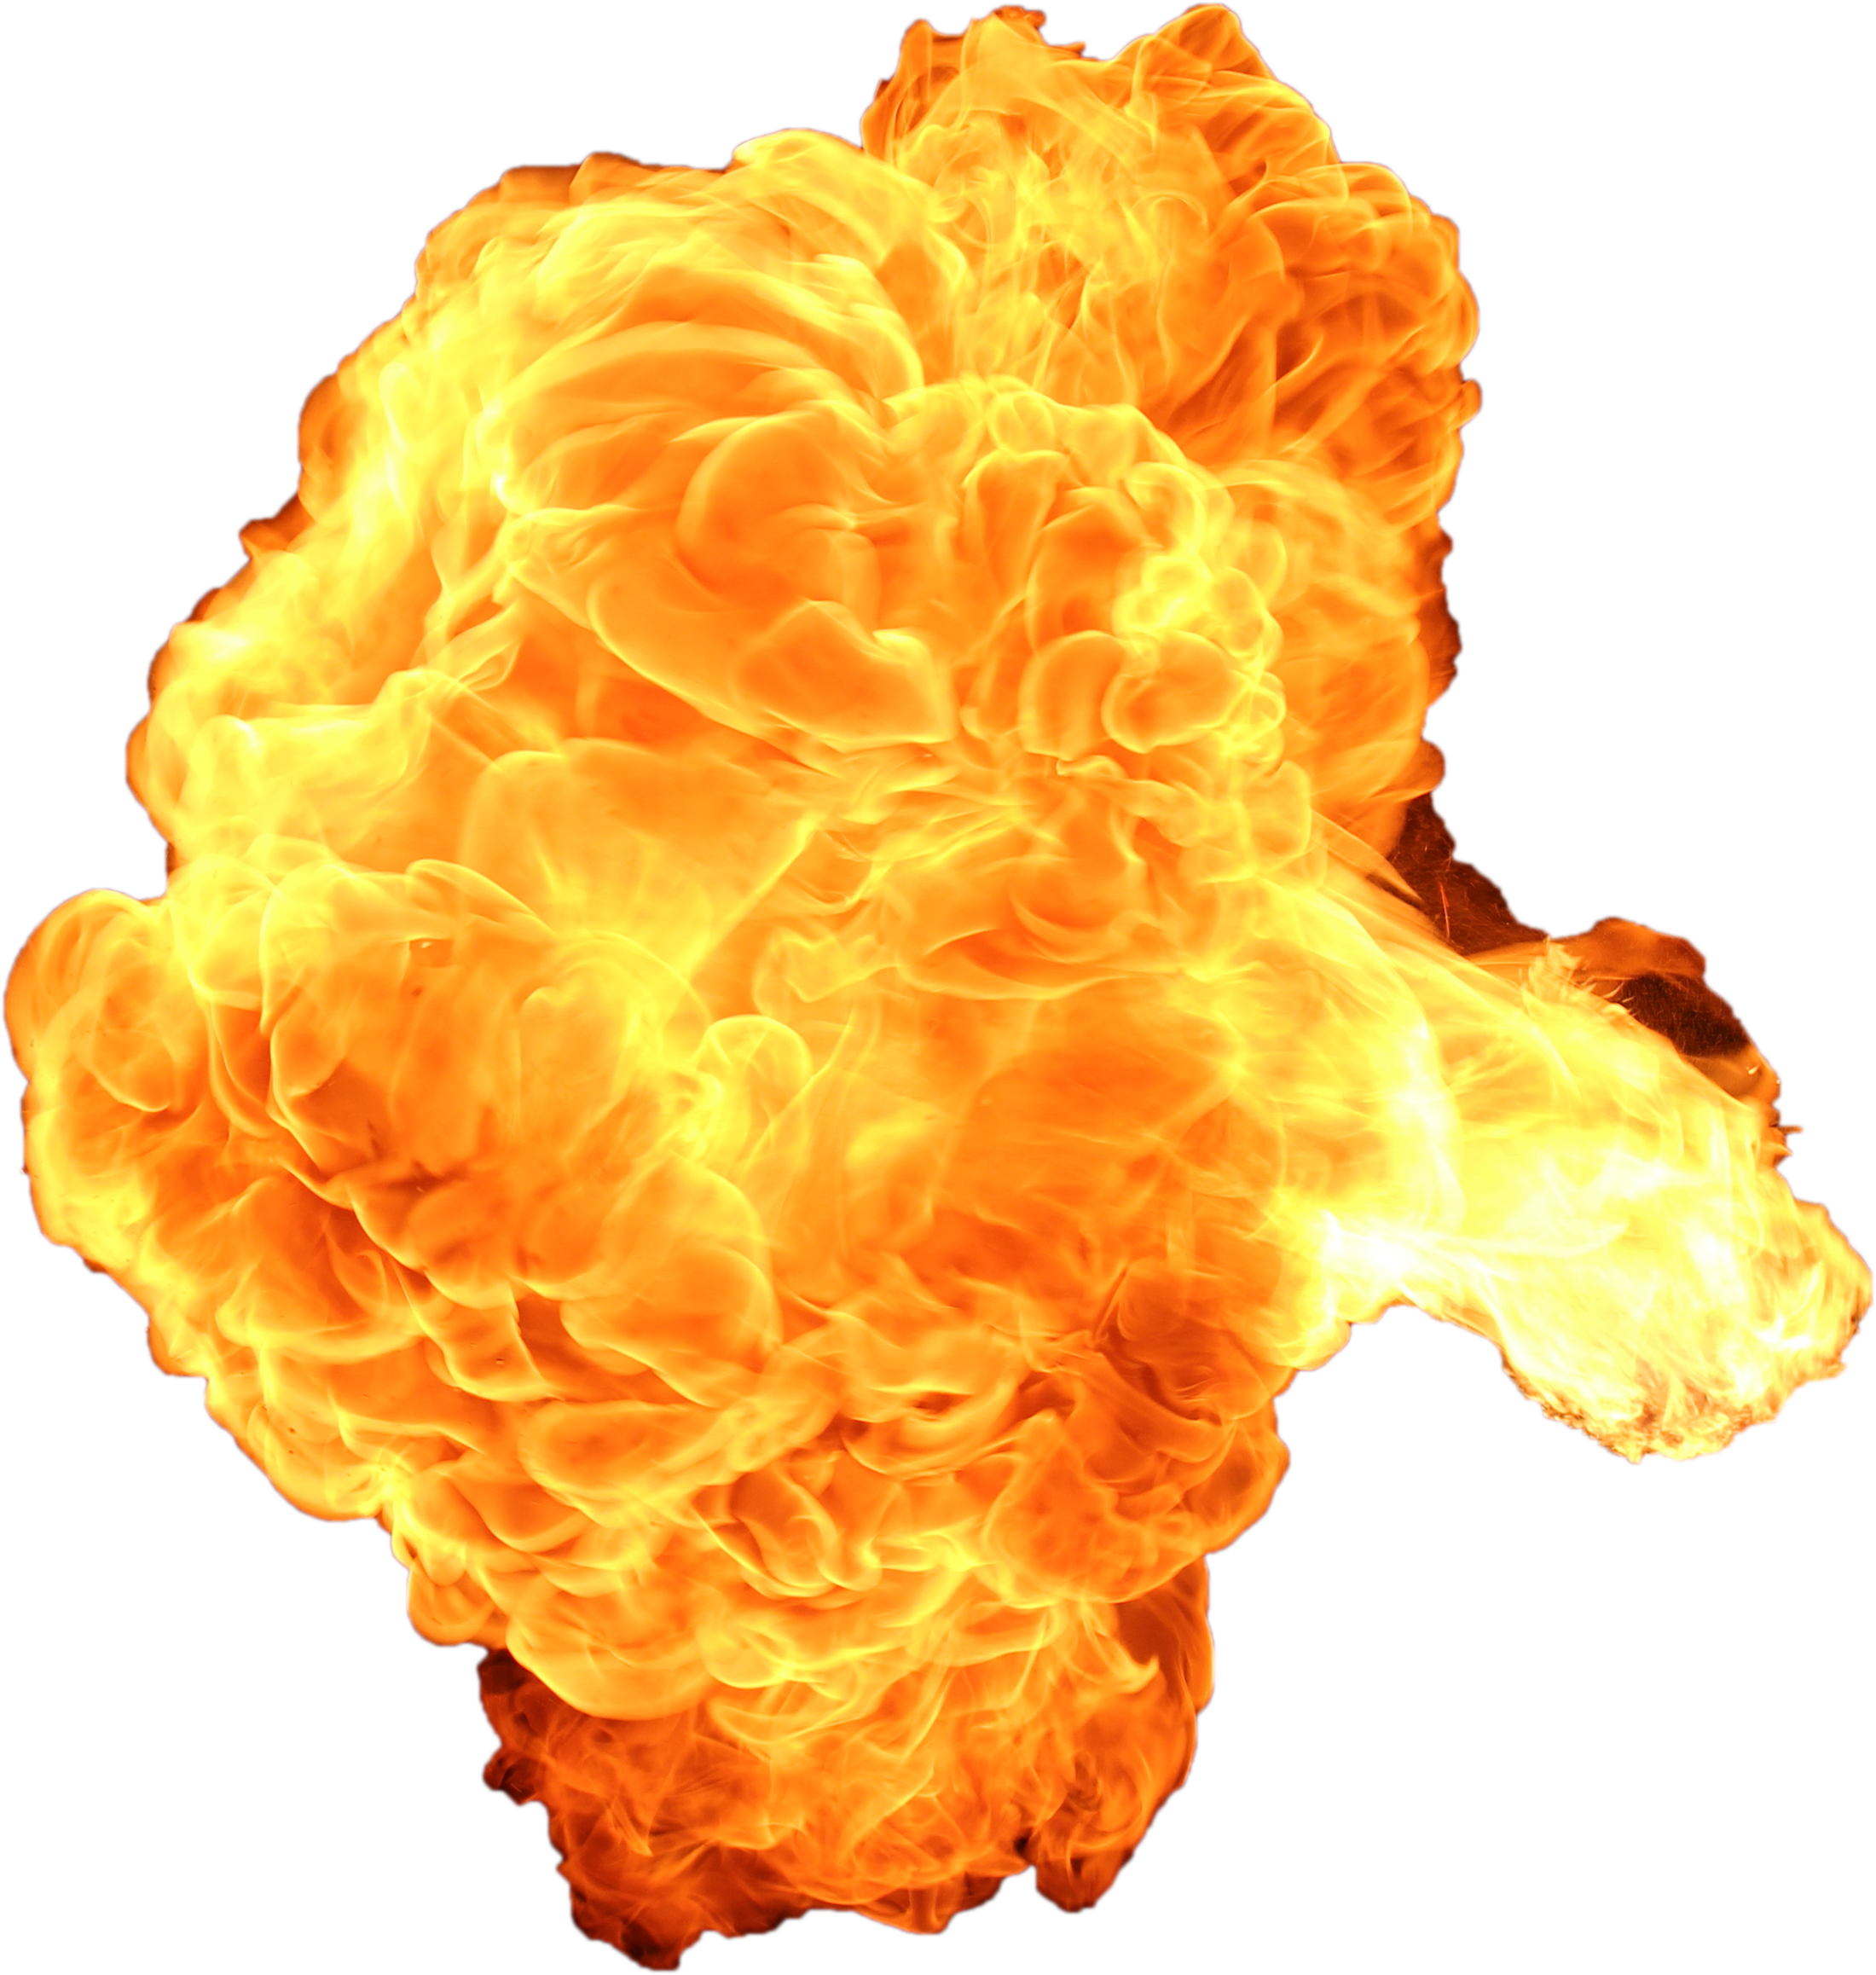 Big Explosion With Fire And Smoke PNG Image Fire